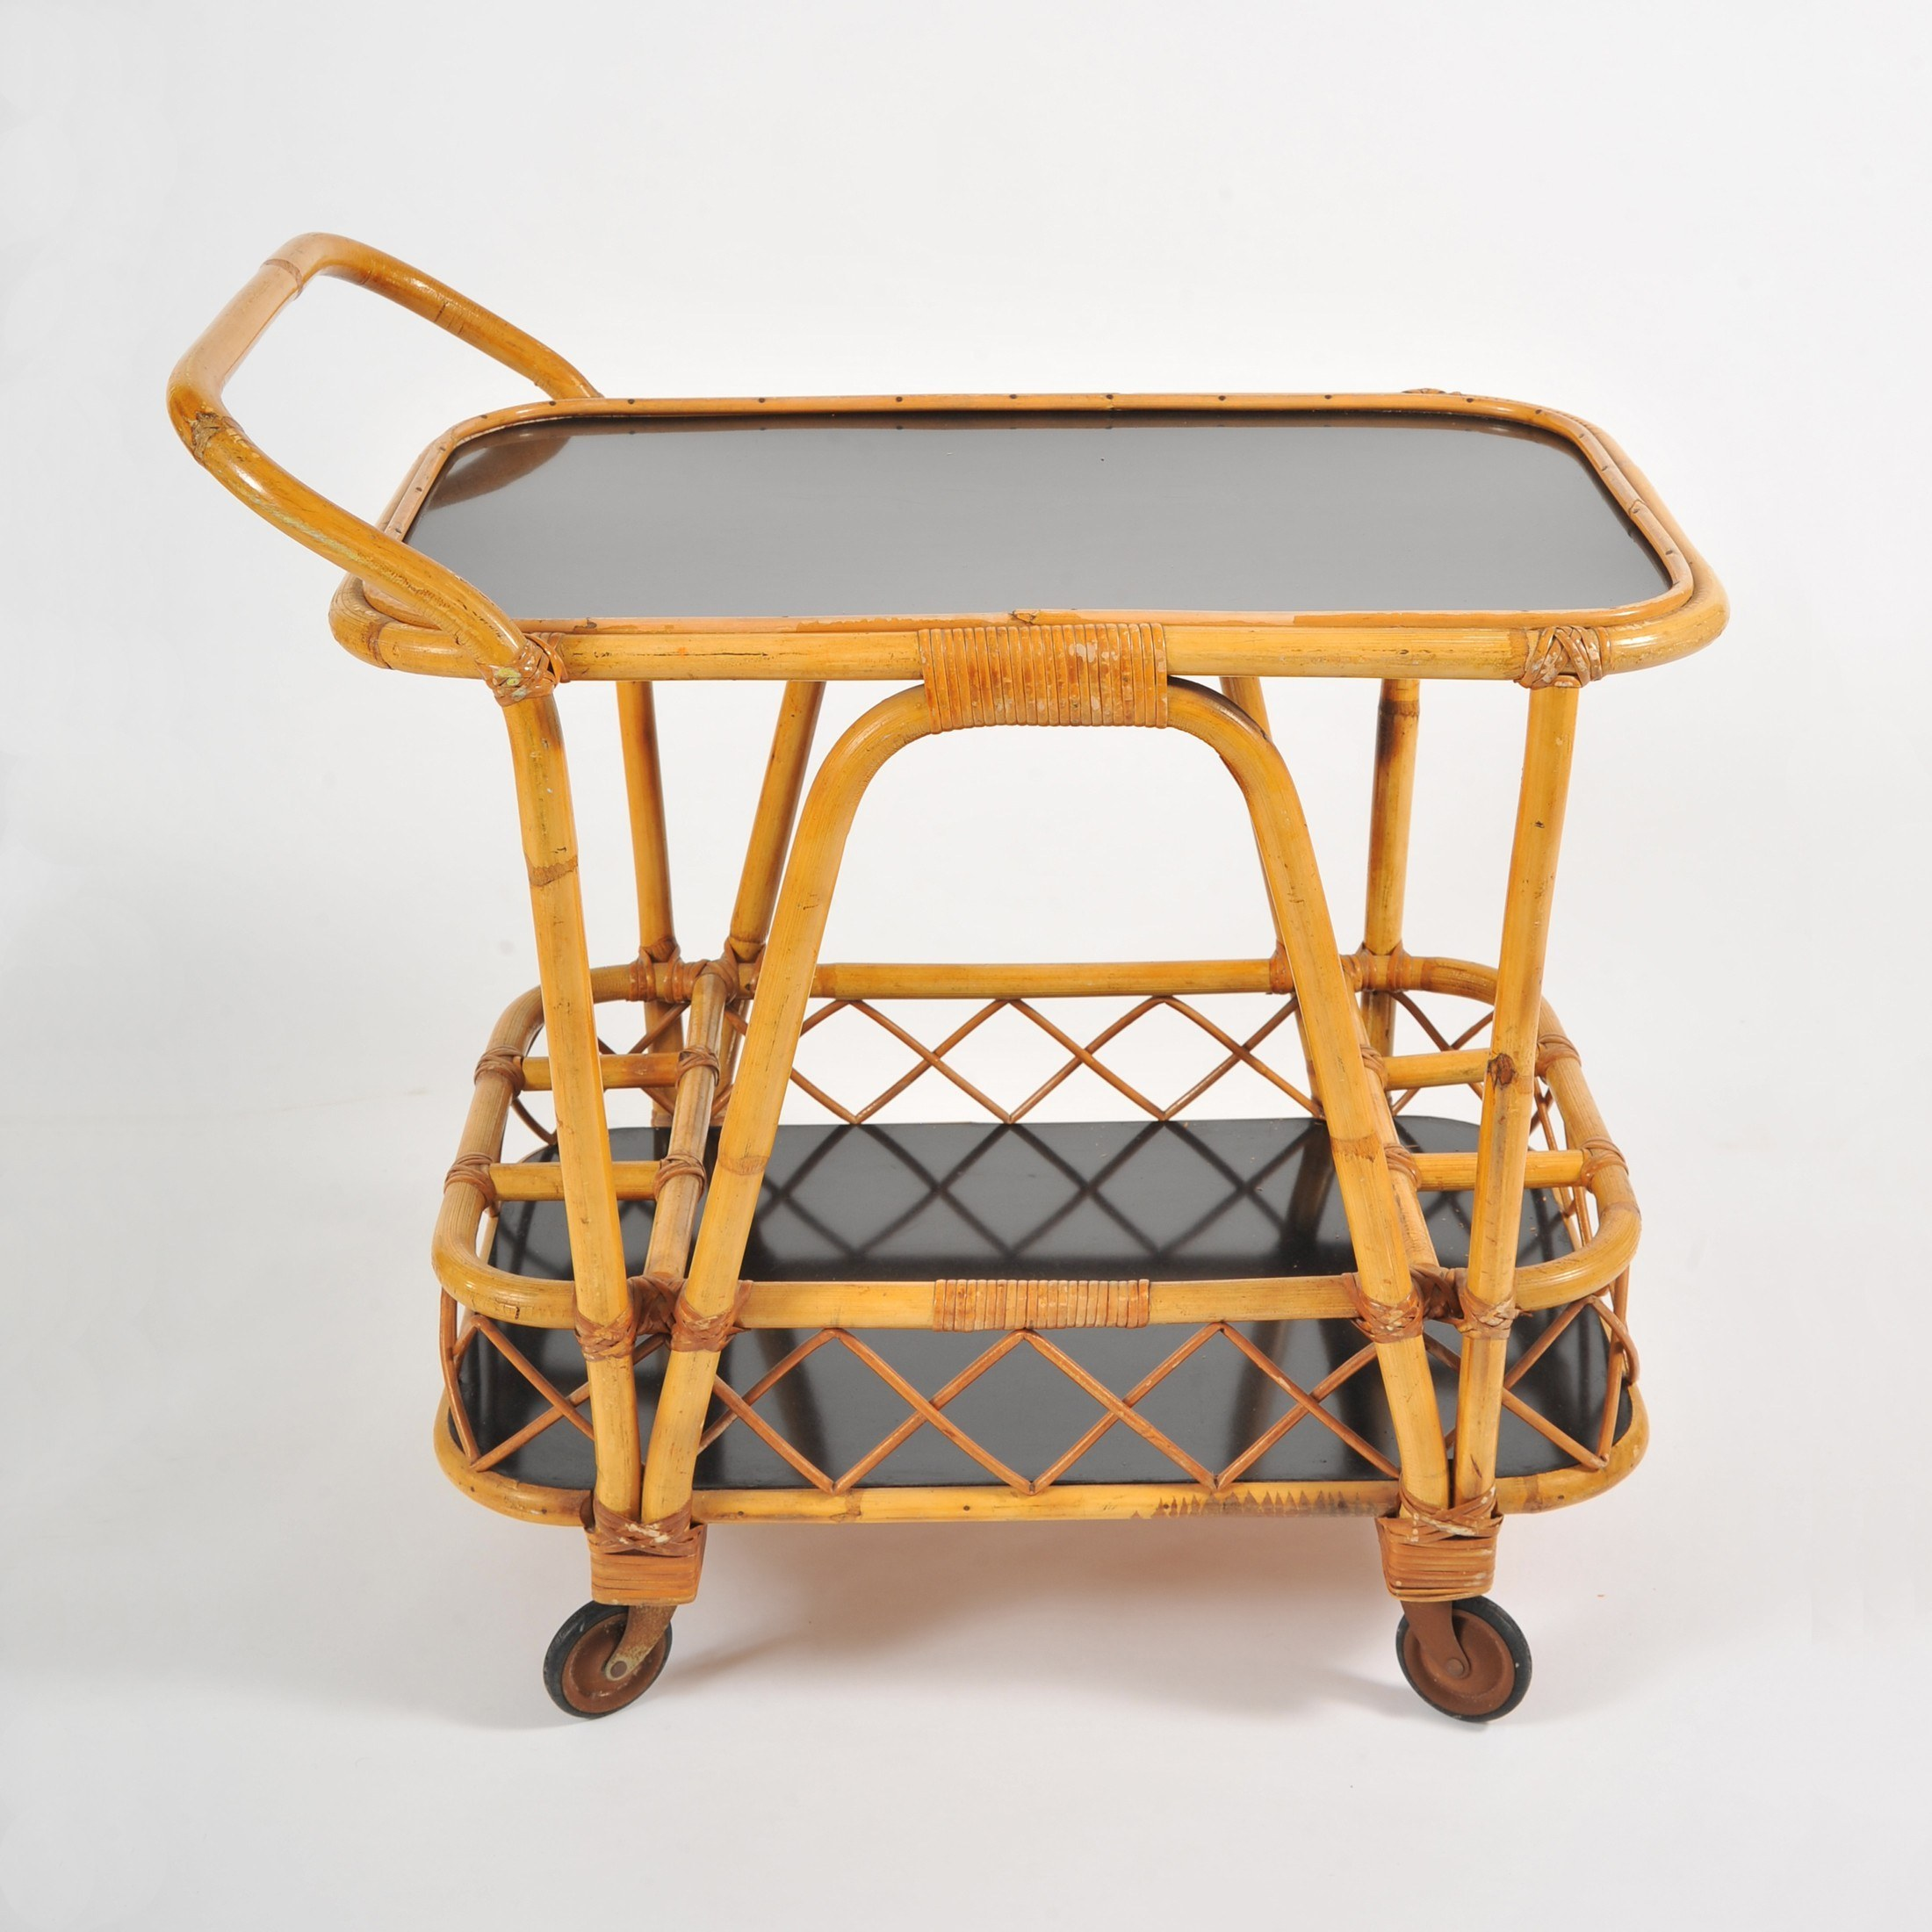 Valerie Wade Ams653 1950S French Bamboo Drinks Trolley 02